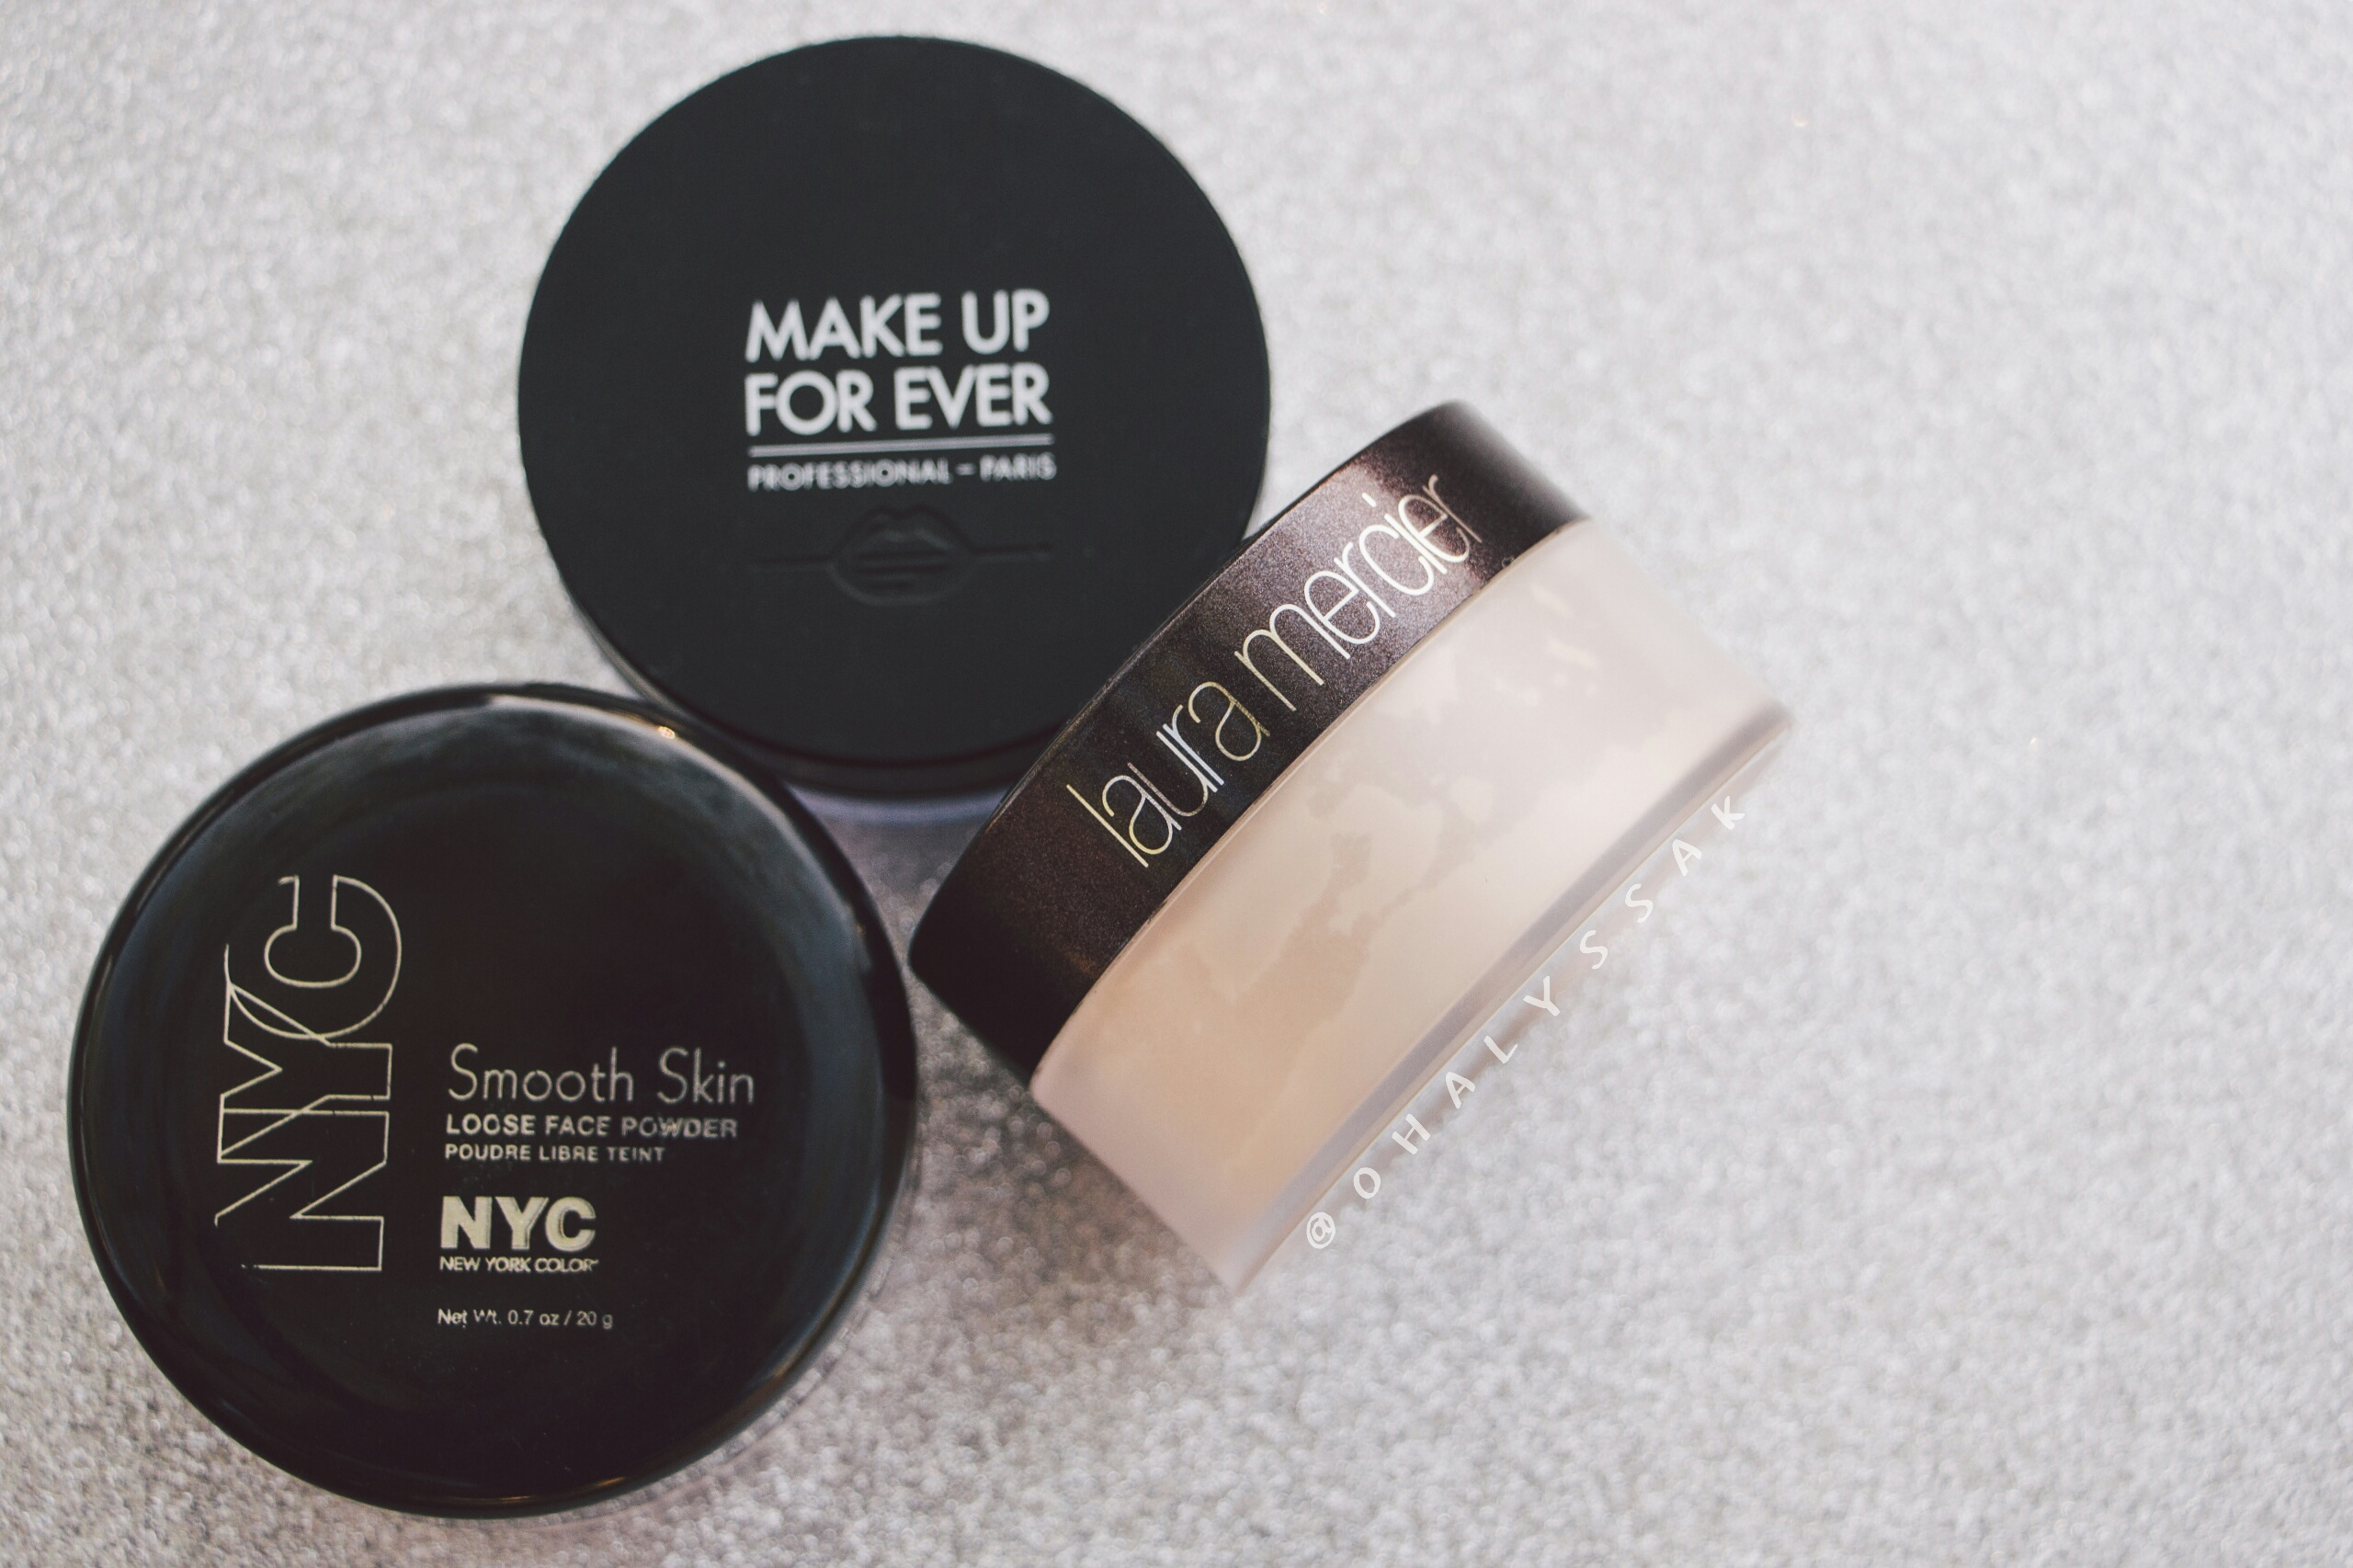 MOTD setting powder MUFE Makeup Forever Ultra HD Microfinishing Loose Powder Laura Mercier NYC Smooth Skin Loose Face Powder dupe that affordable makeup makeup favorites bblogger